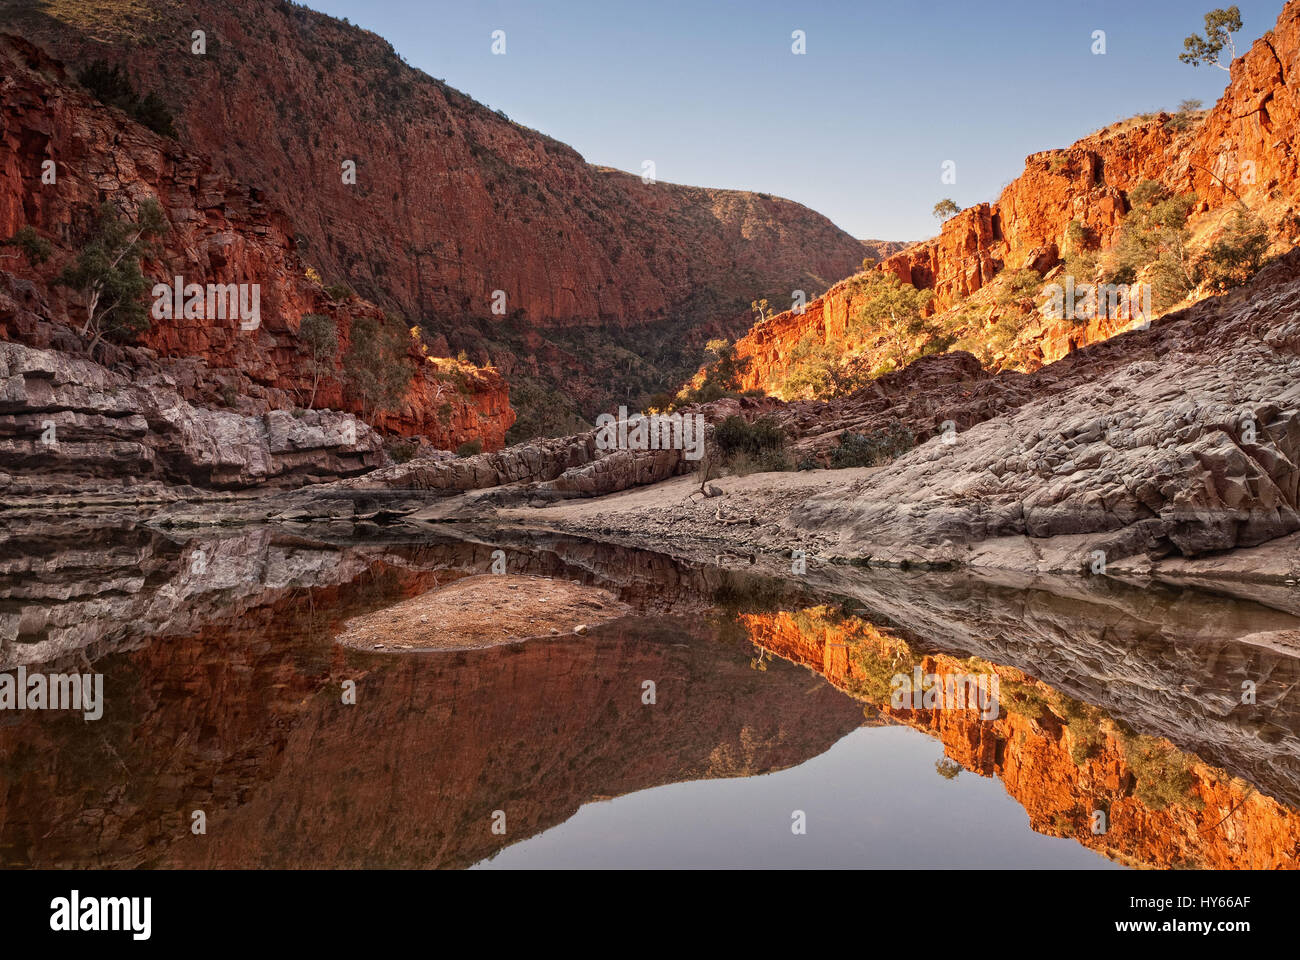 Ormiston Gorge in the West MacDonnell National Park, Australia Northern Territory - Stock Image